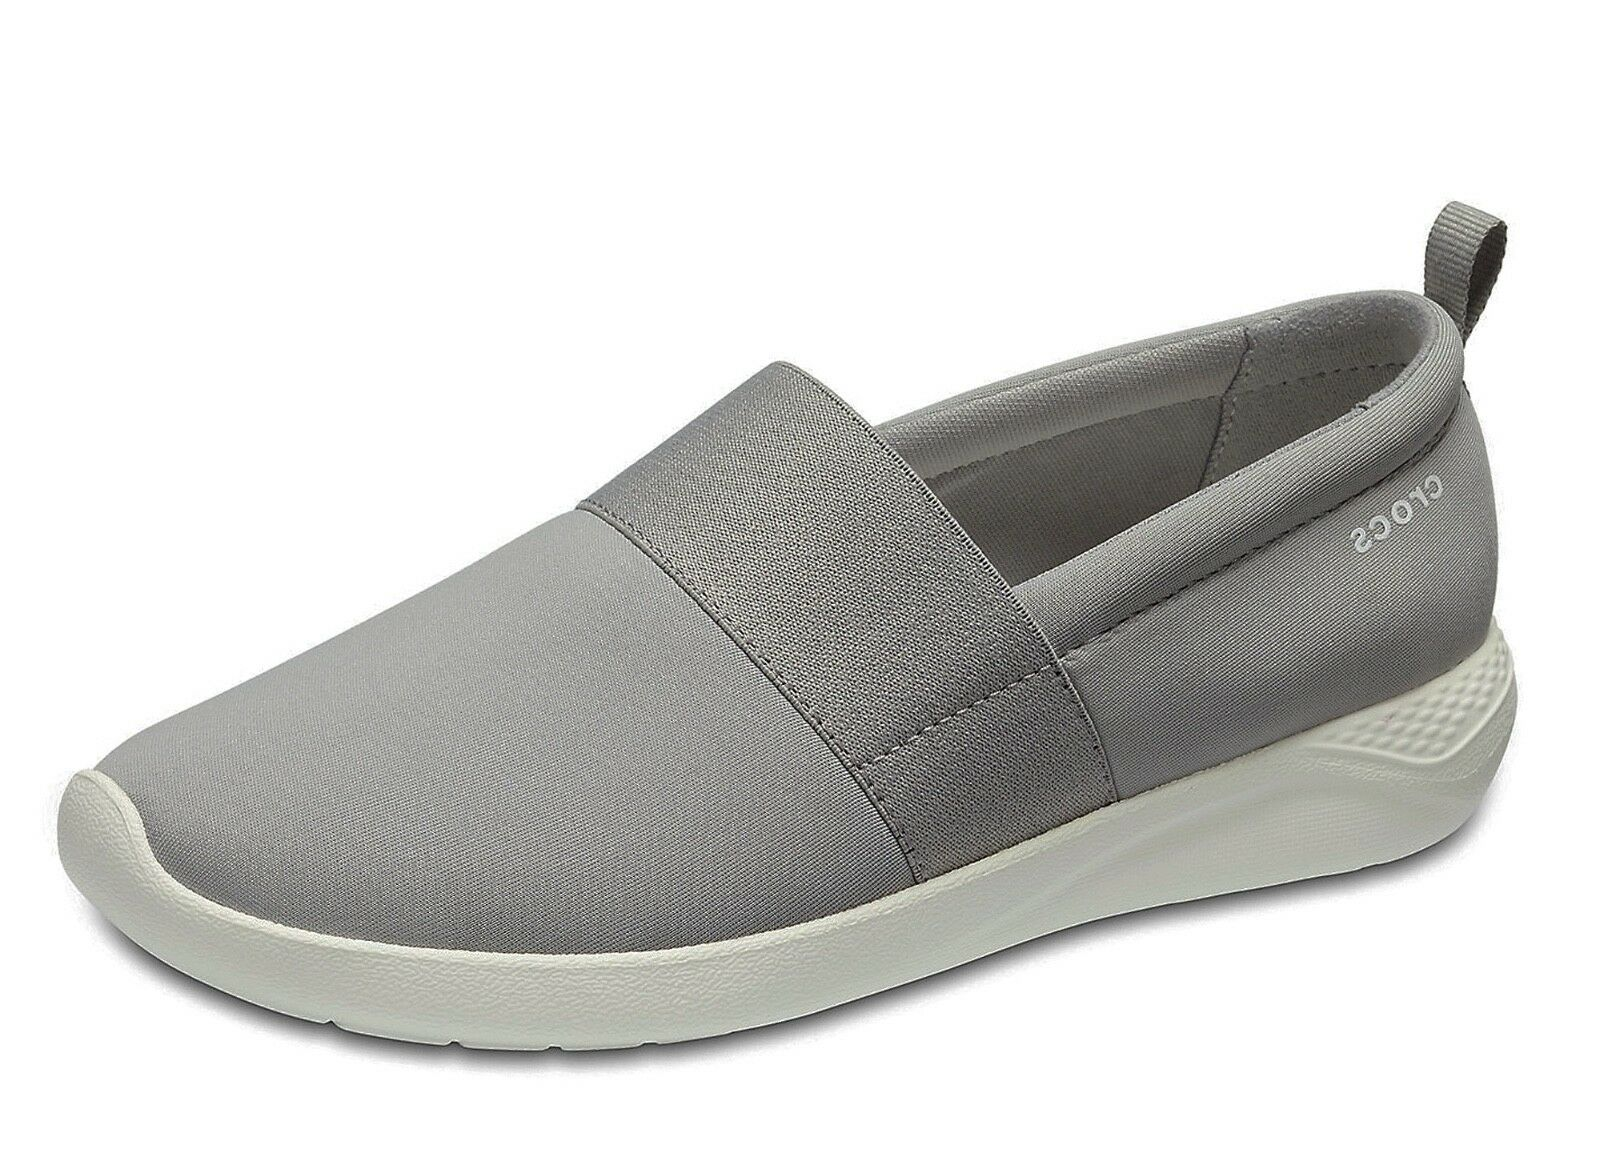 Crocs NEW Literide slip on light grey trainers white comfort shoes womens trainers grey UK 3-9 21bdb9